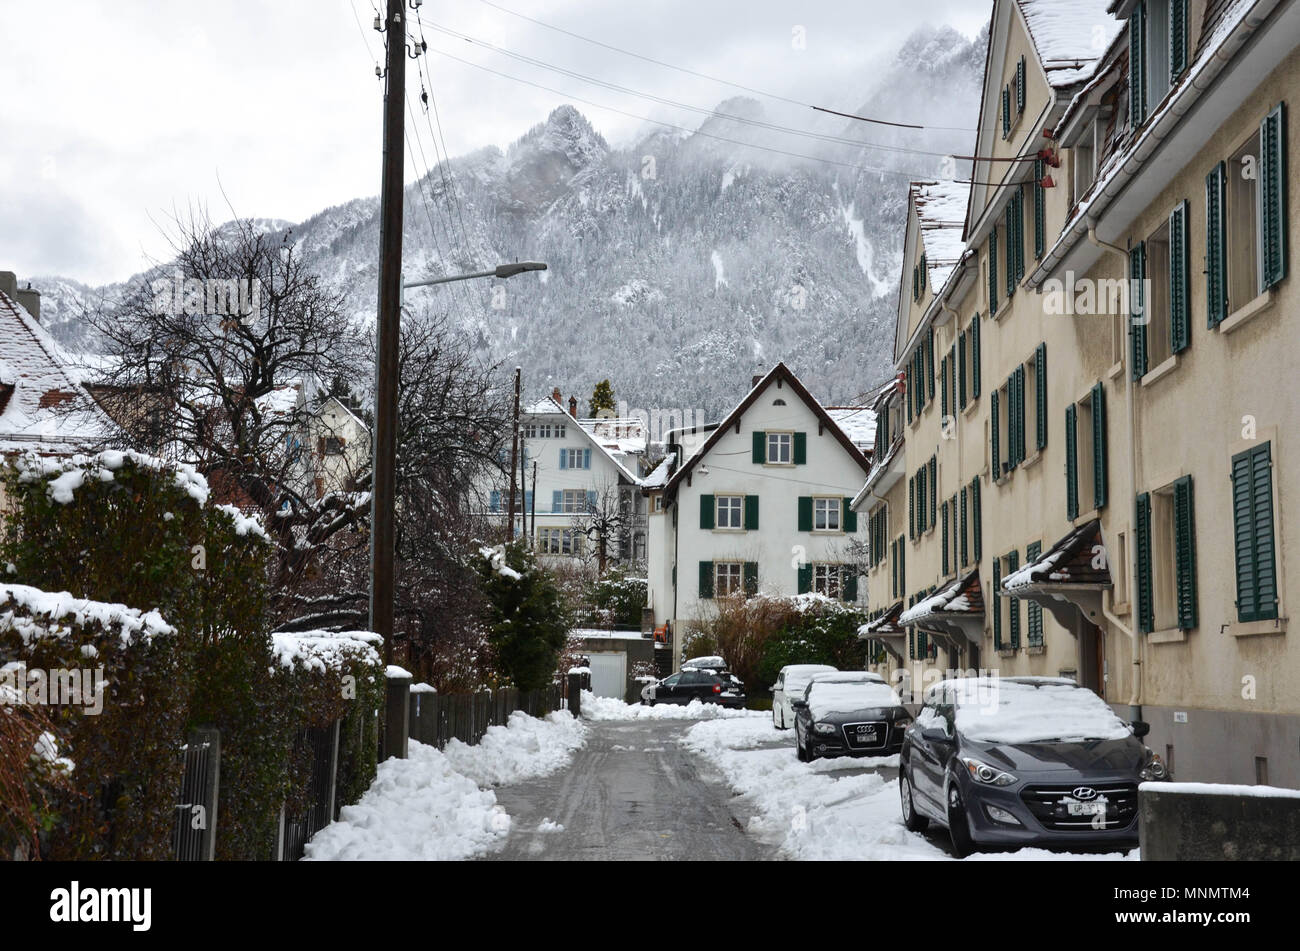 A residential street in Chur, Grisons canton, Switzerland, January 2018 - Stock Image